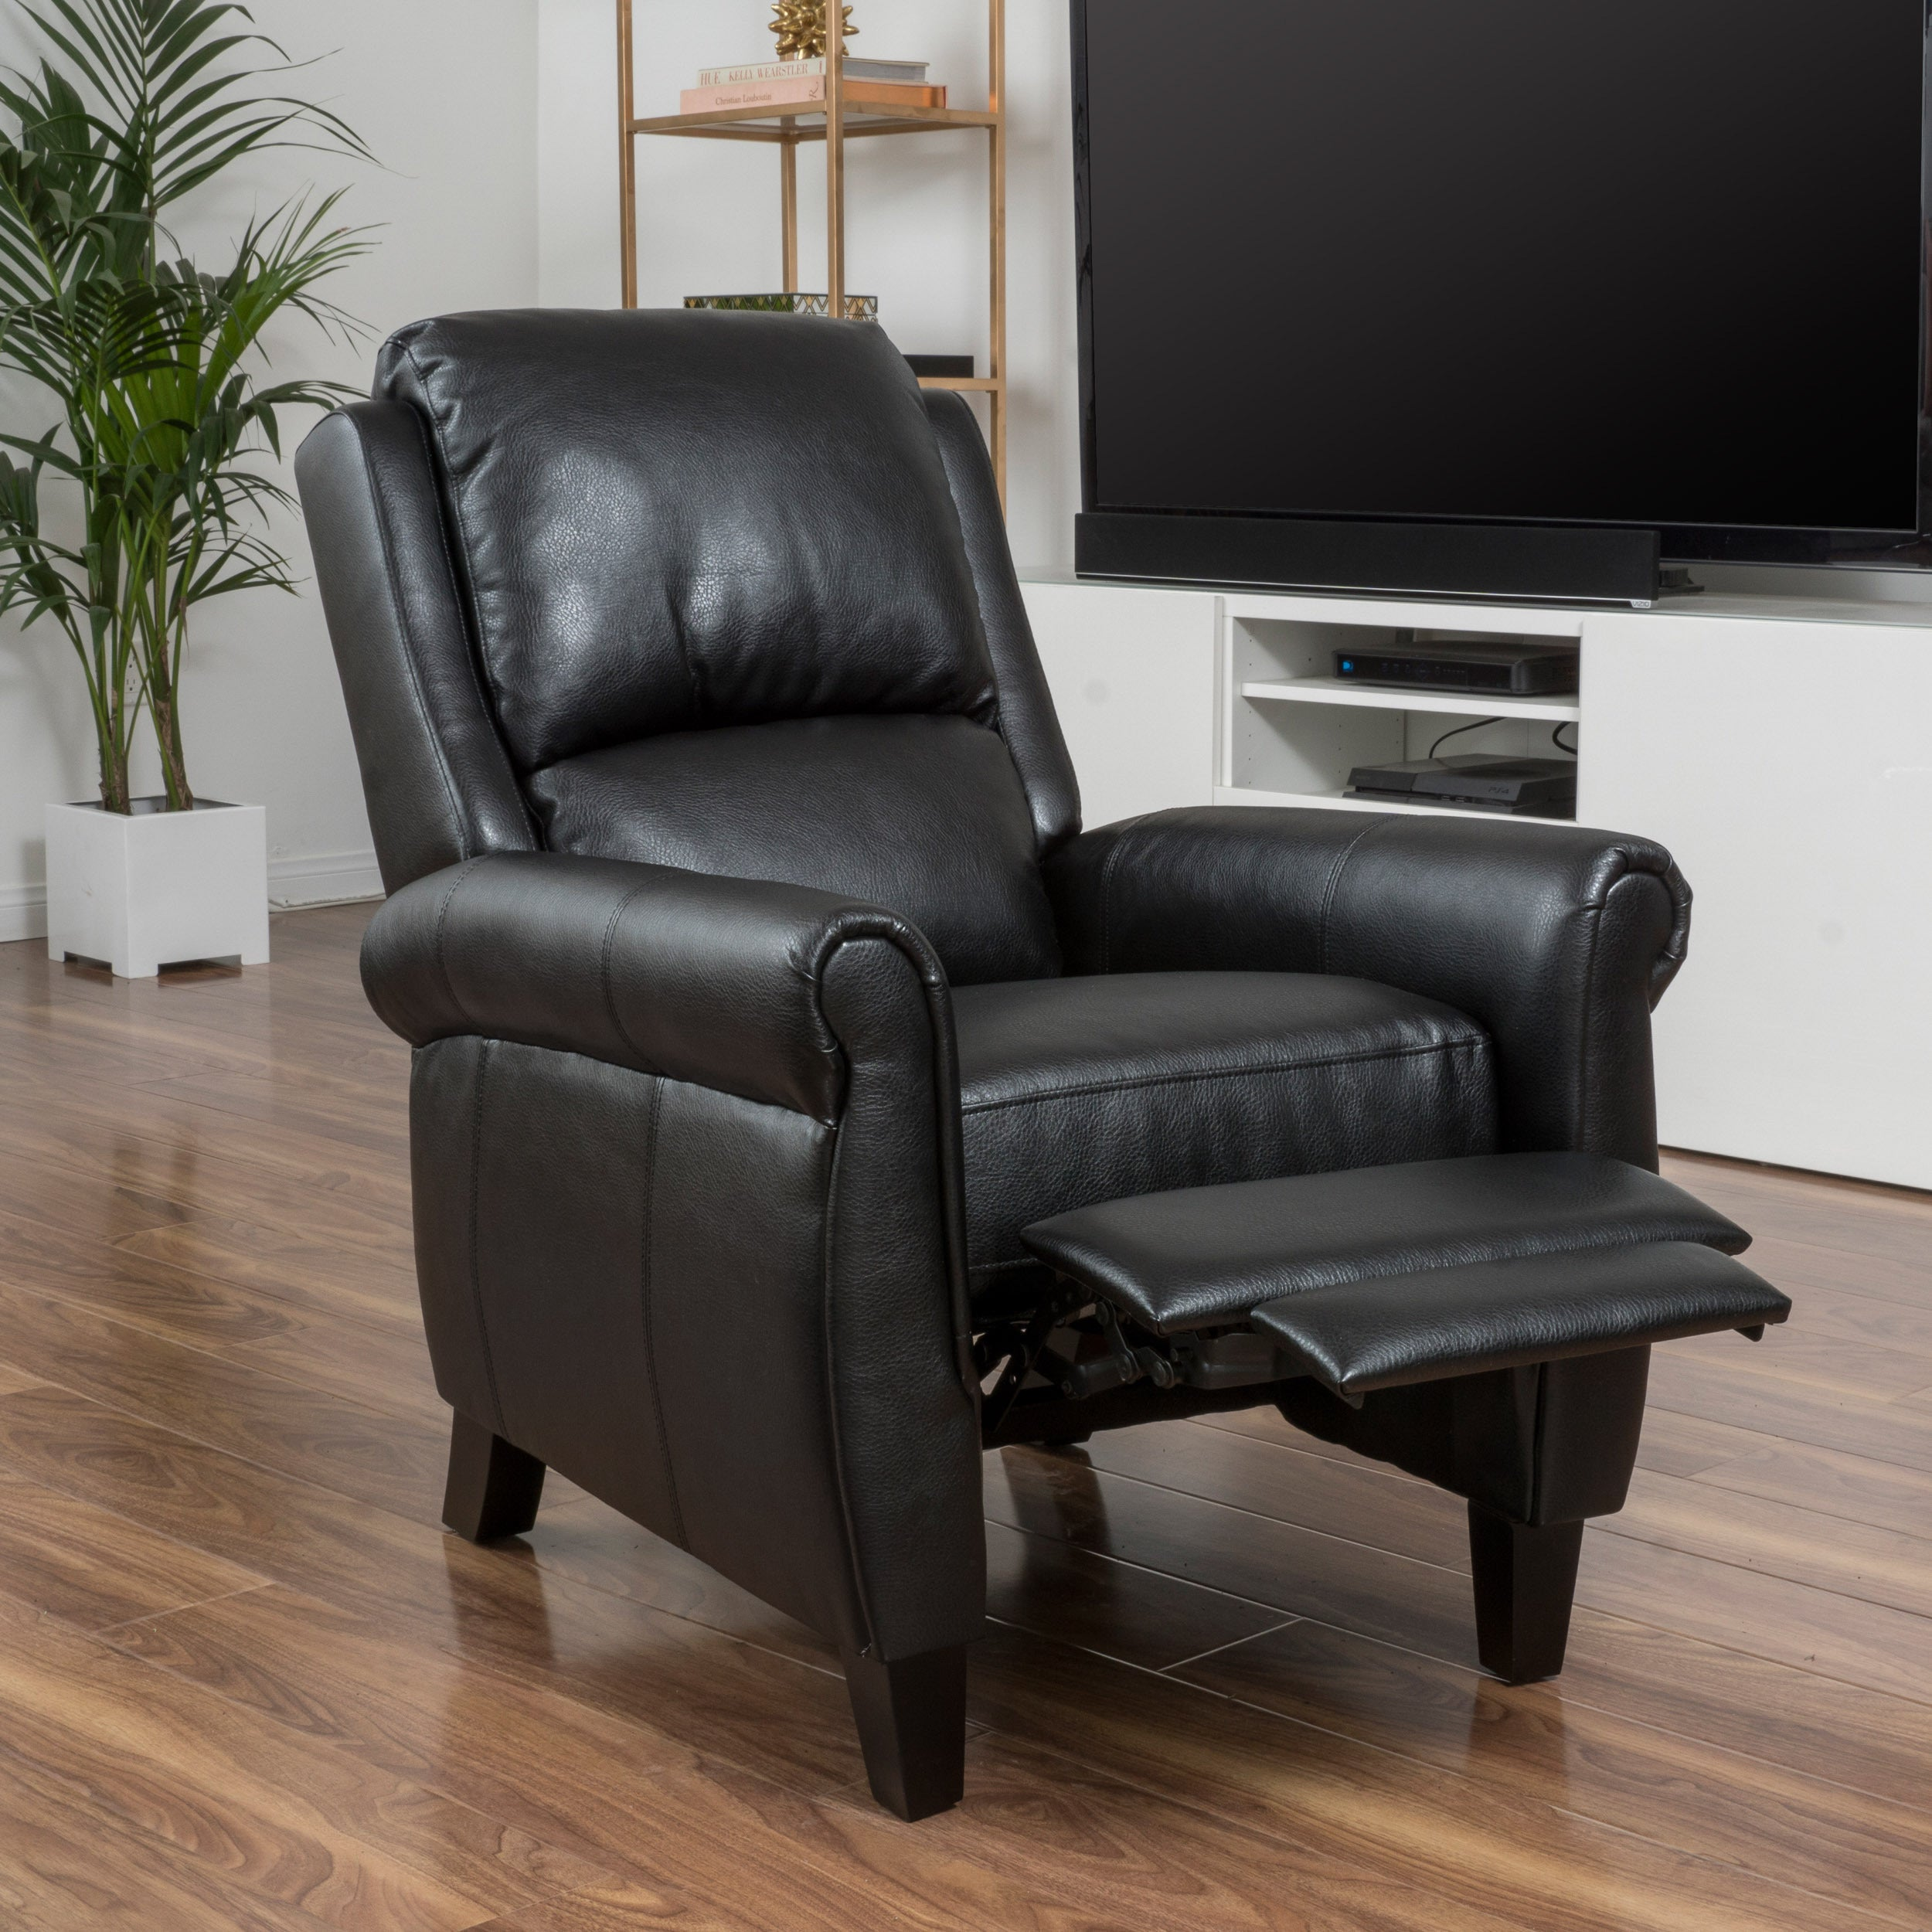 Shop Haddan PU Leather Recliner Club Chair By Christopher Knight Home   On  Sale   Free Shipping Today   Overstock.com   11104245